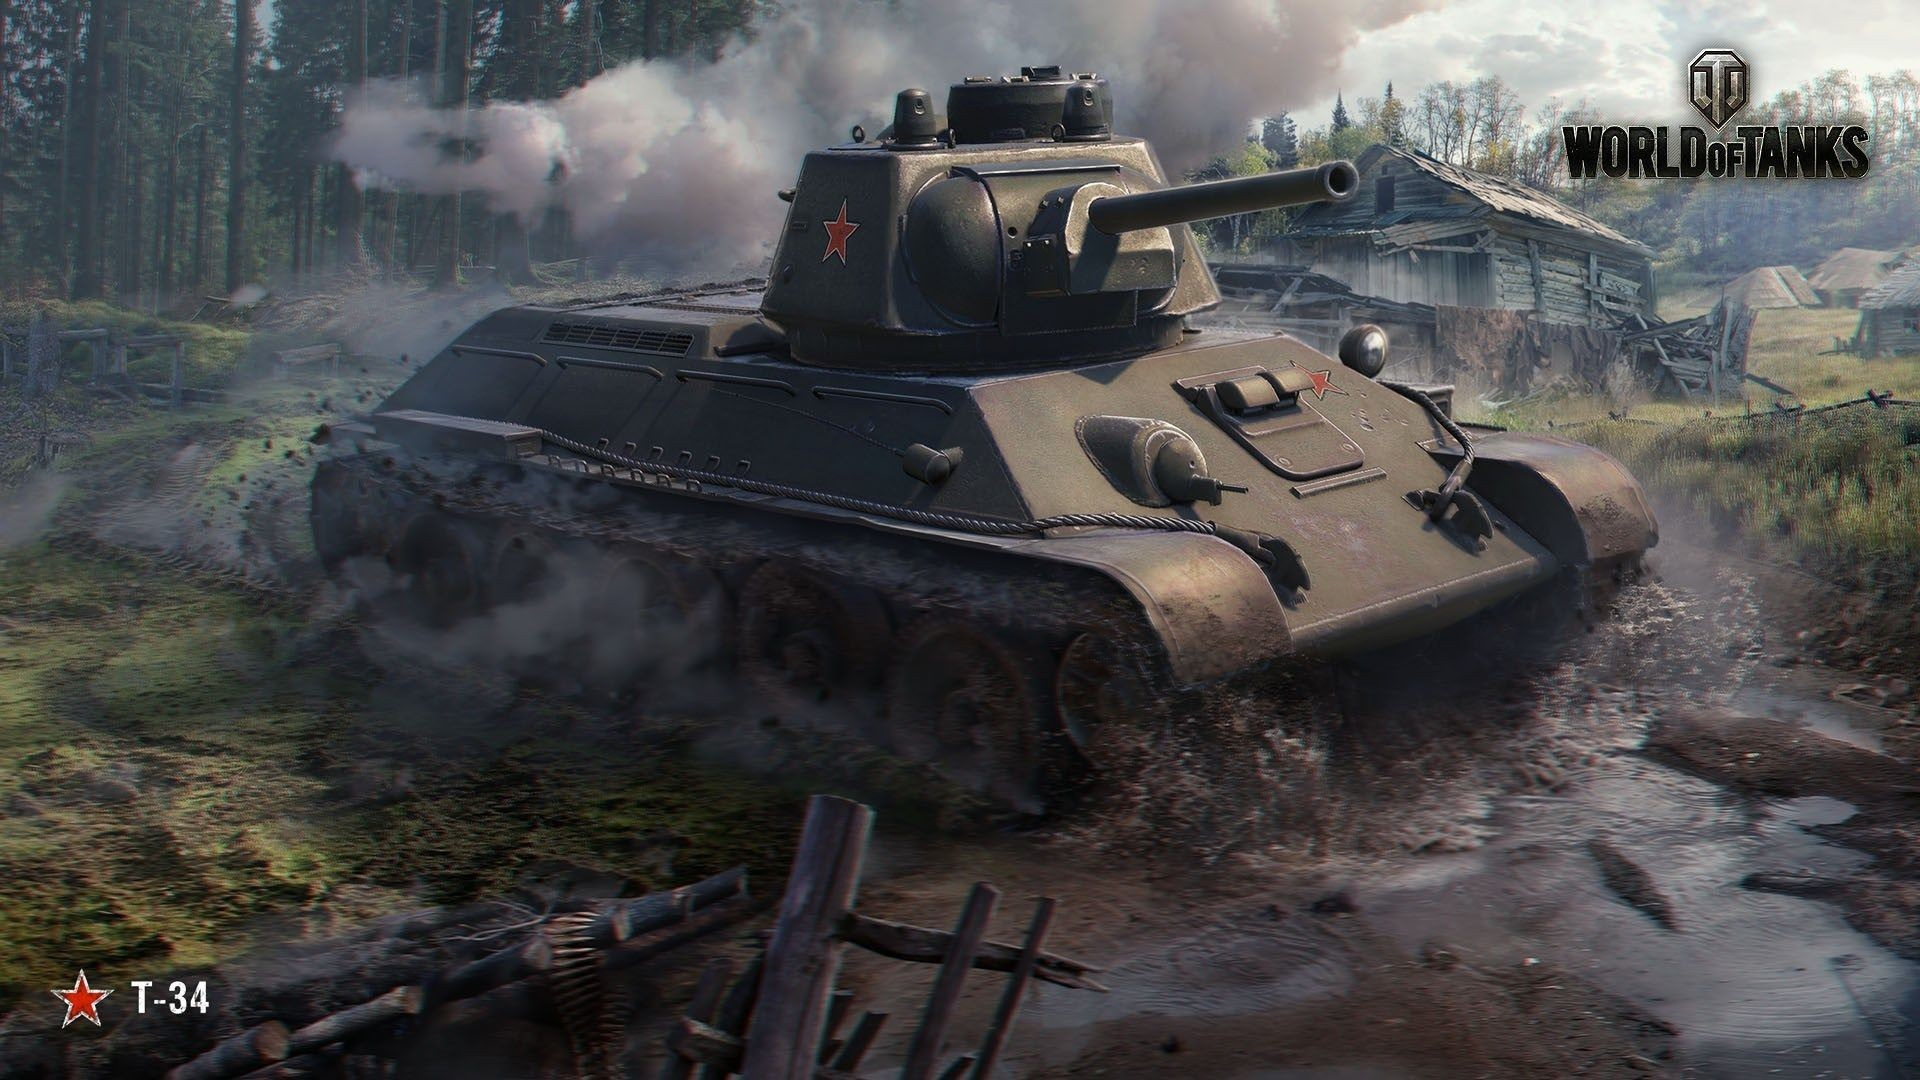 Res: 1920x1080, Ww2 Wallpaper Lovely World Of Tanks Category Free World Of Tanks Picture